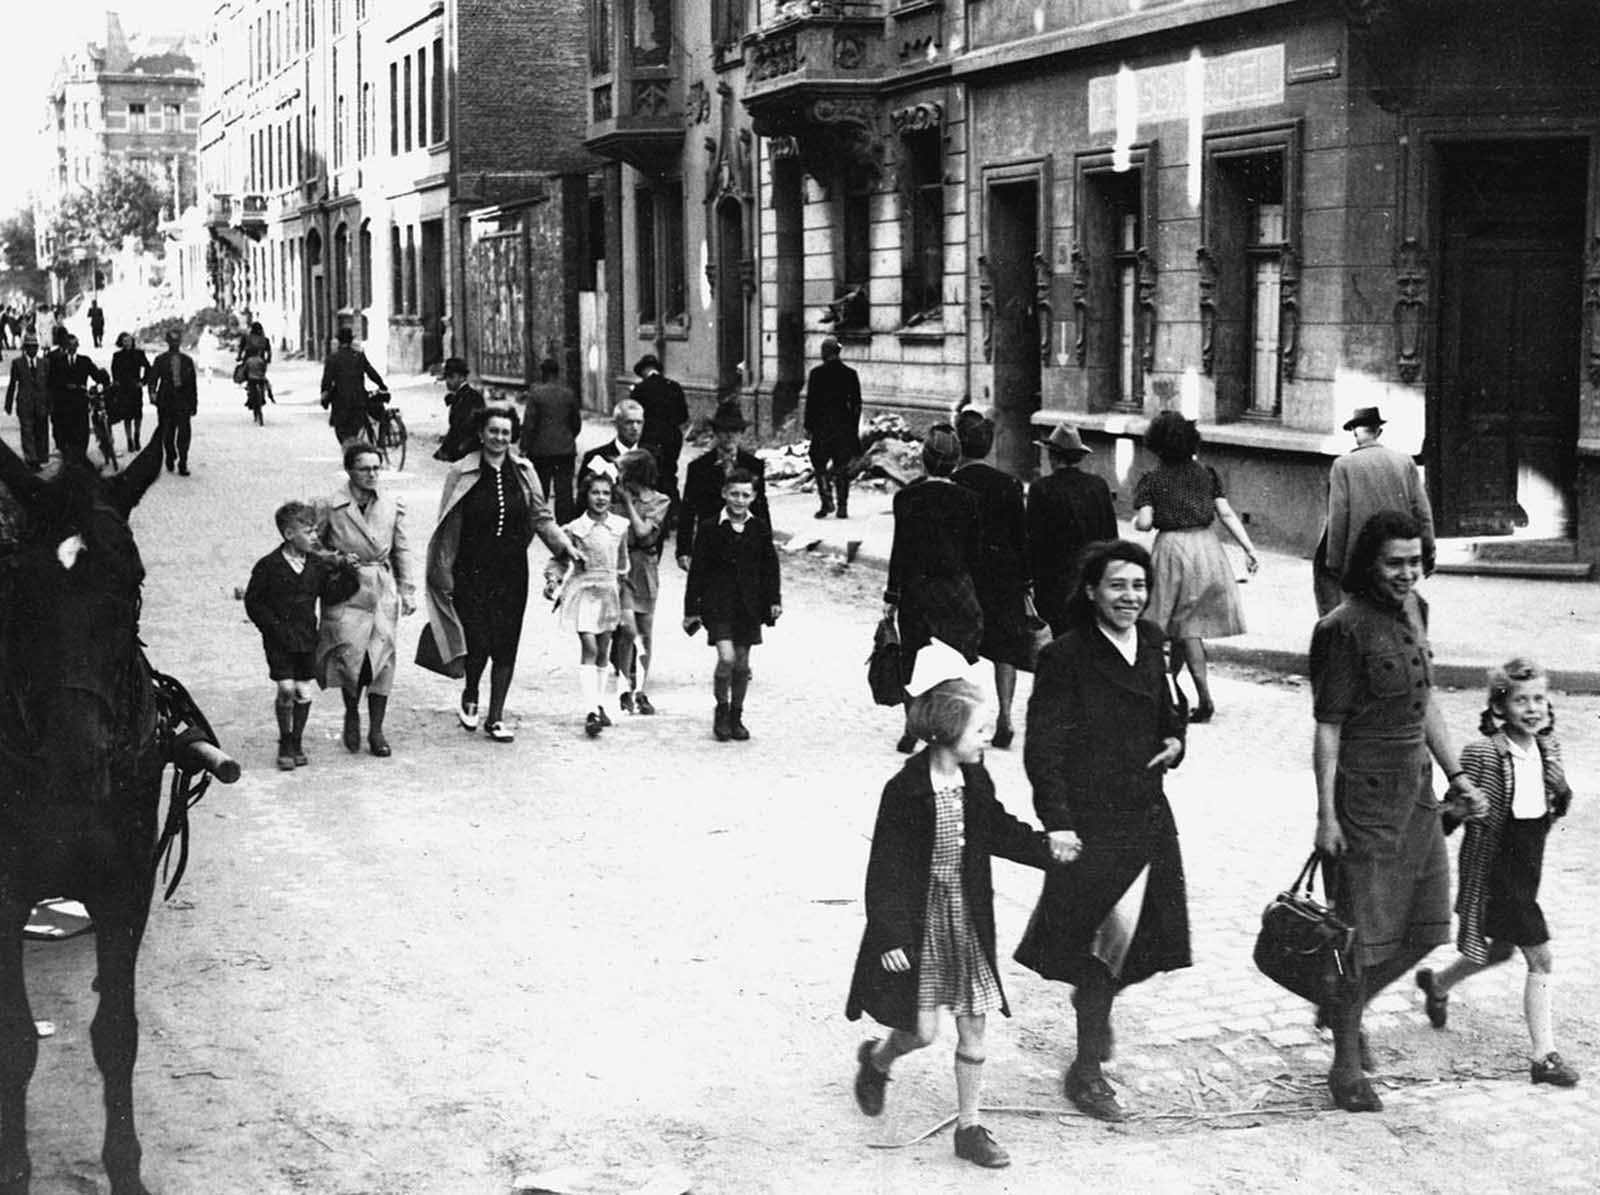 German mothers walk their children to school through the streets of Aachen, Germany, on June 6, 1945, for registration at the first public school to be opened by the U.S. military government after the war.